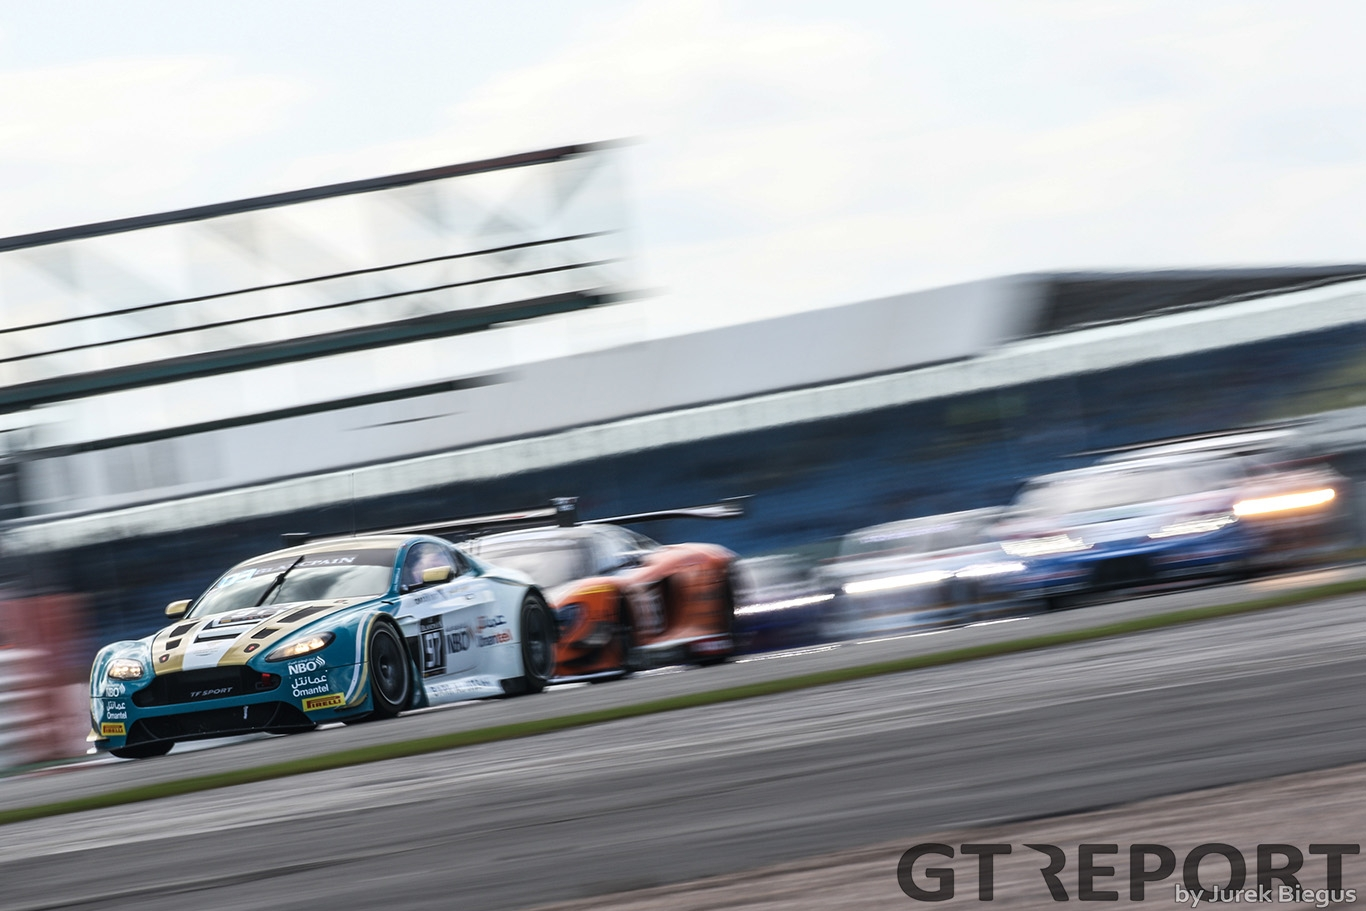 Oman Racing Team with TF Sport | Aston Martin V12 GT3 | Ahmad Al Harthy | Jonny Adam | Blancpain GT Series Endurance Cup | Silverstone Circuit | 14 May 2017 | Photo by Jurek Biegus.